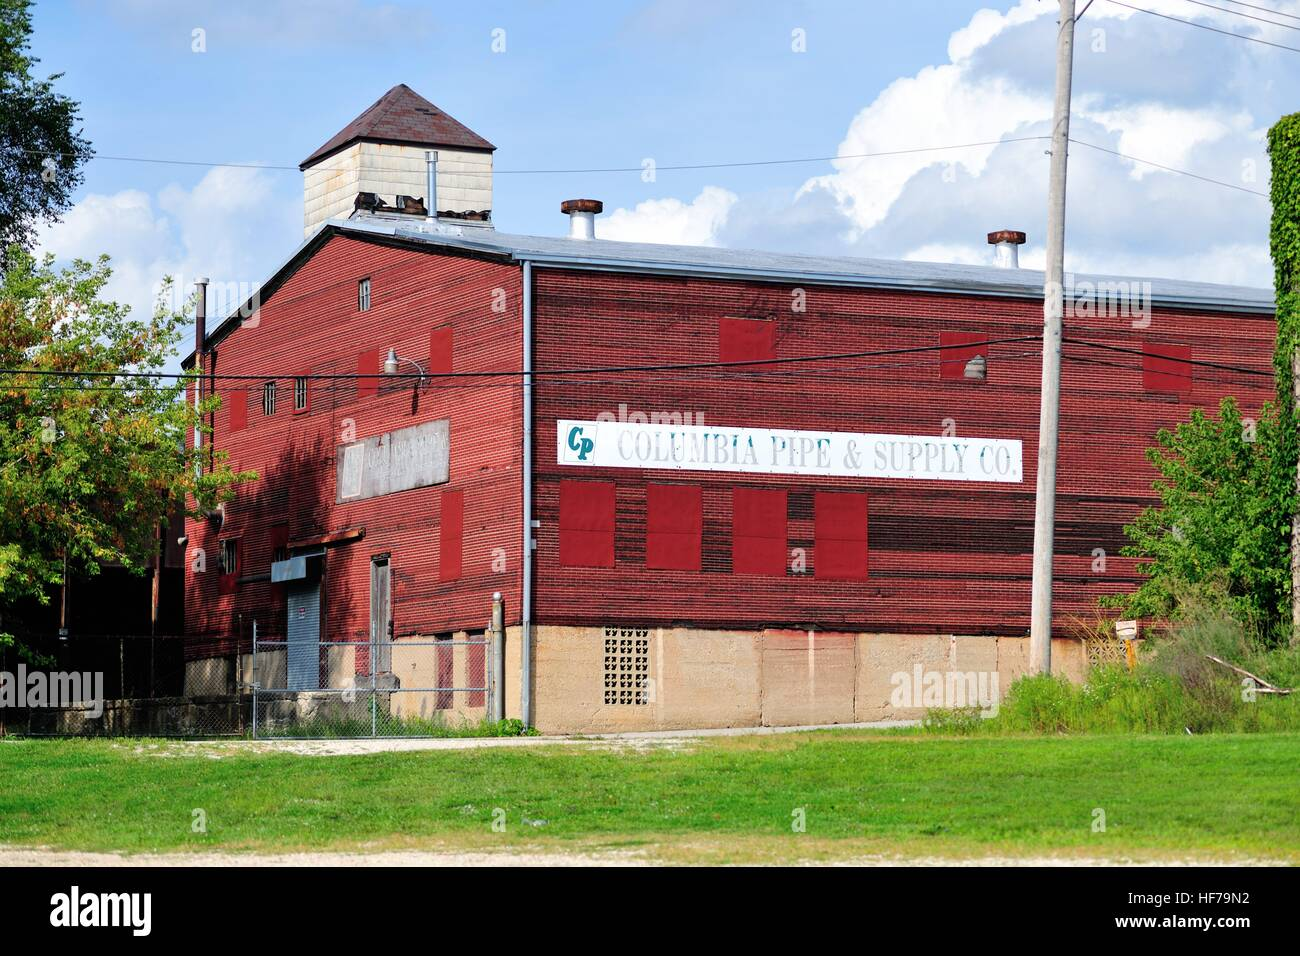 A venerable manufacturing company in the old river town of Elgin, Illinois, USA. - Stock Image